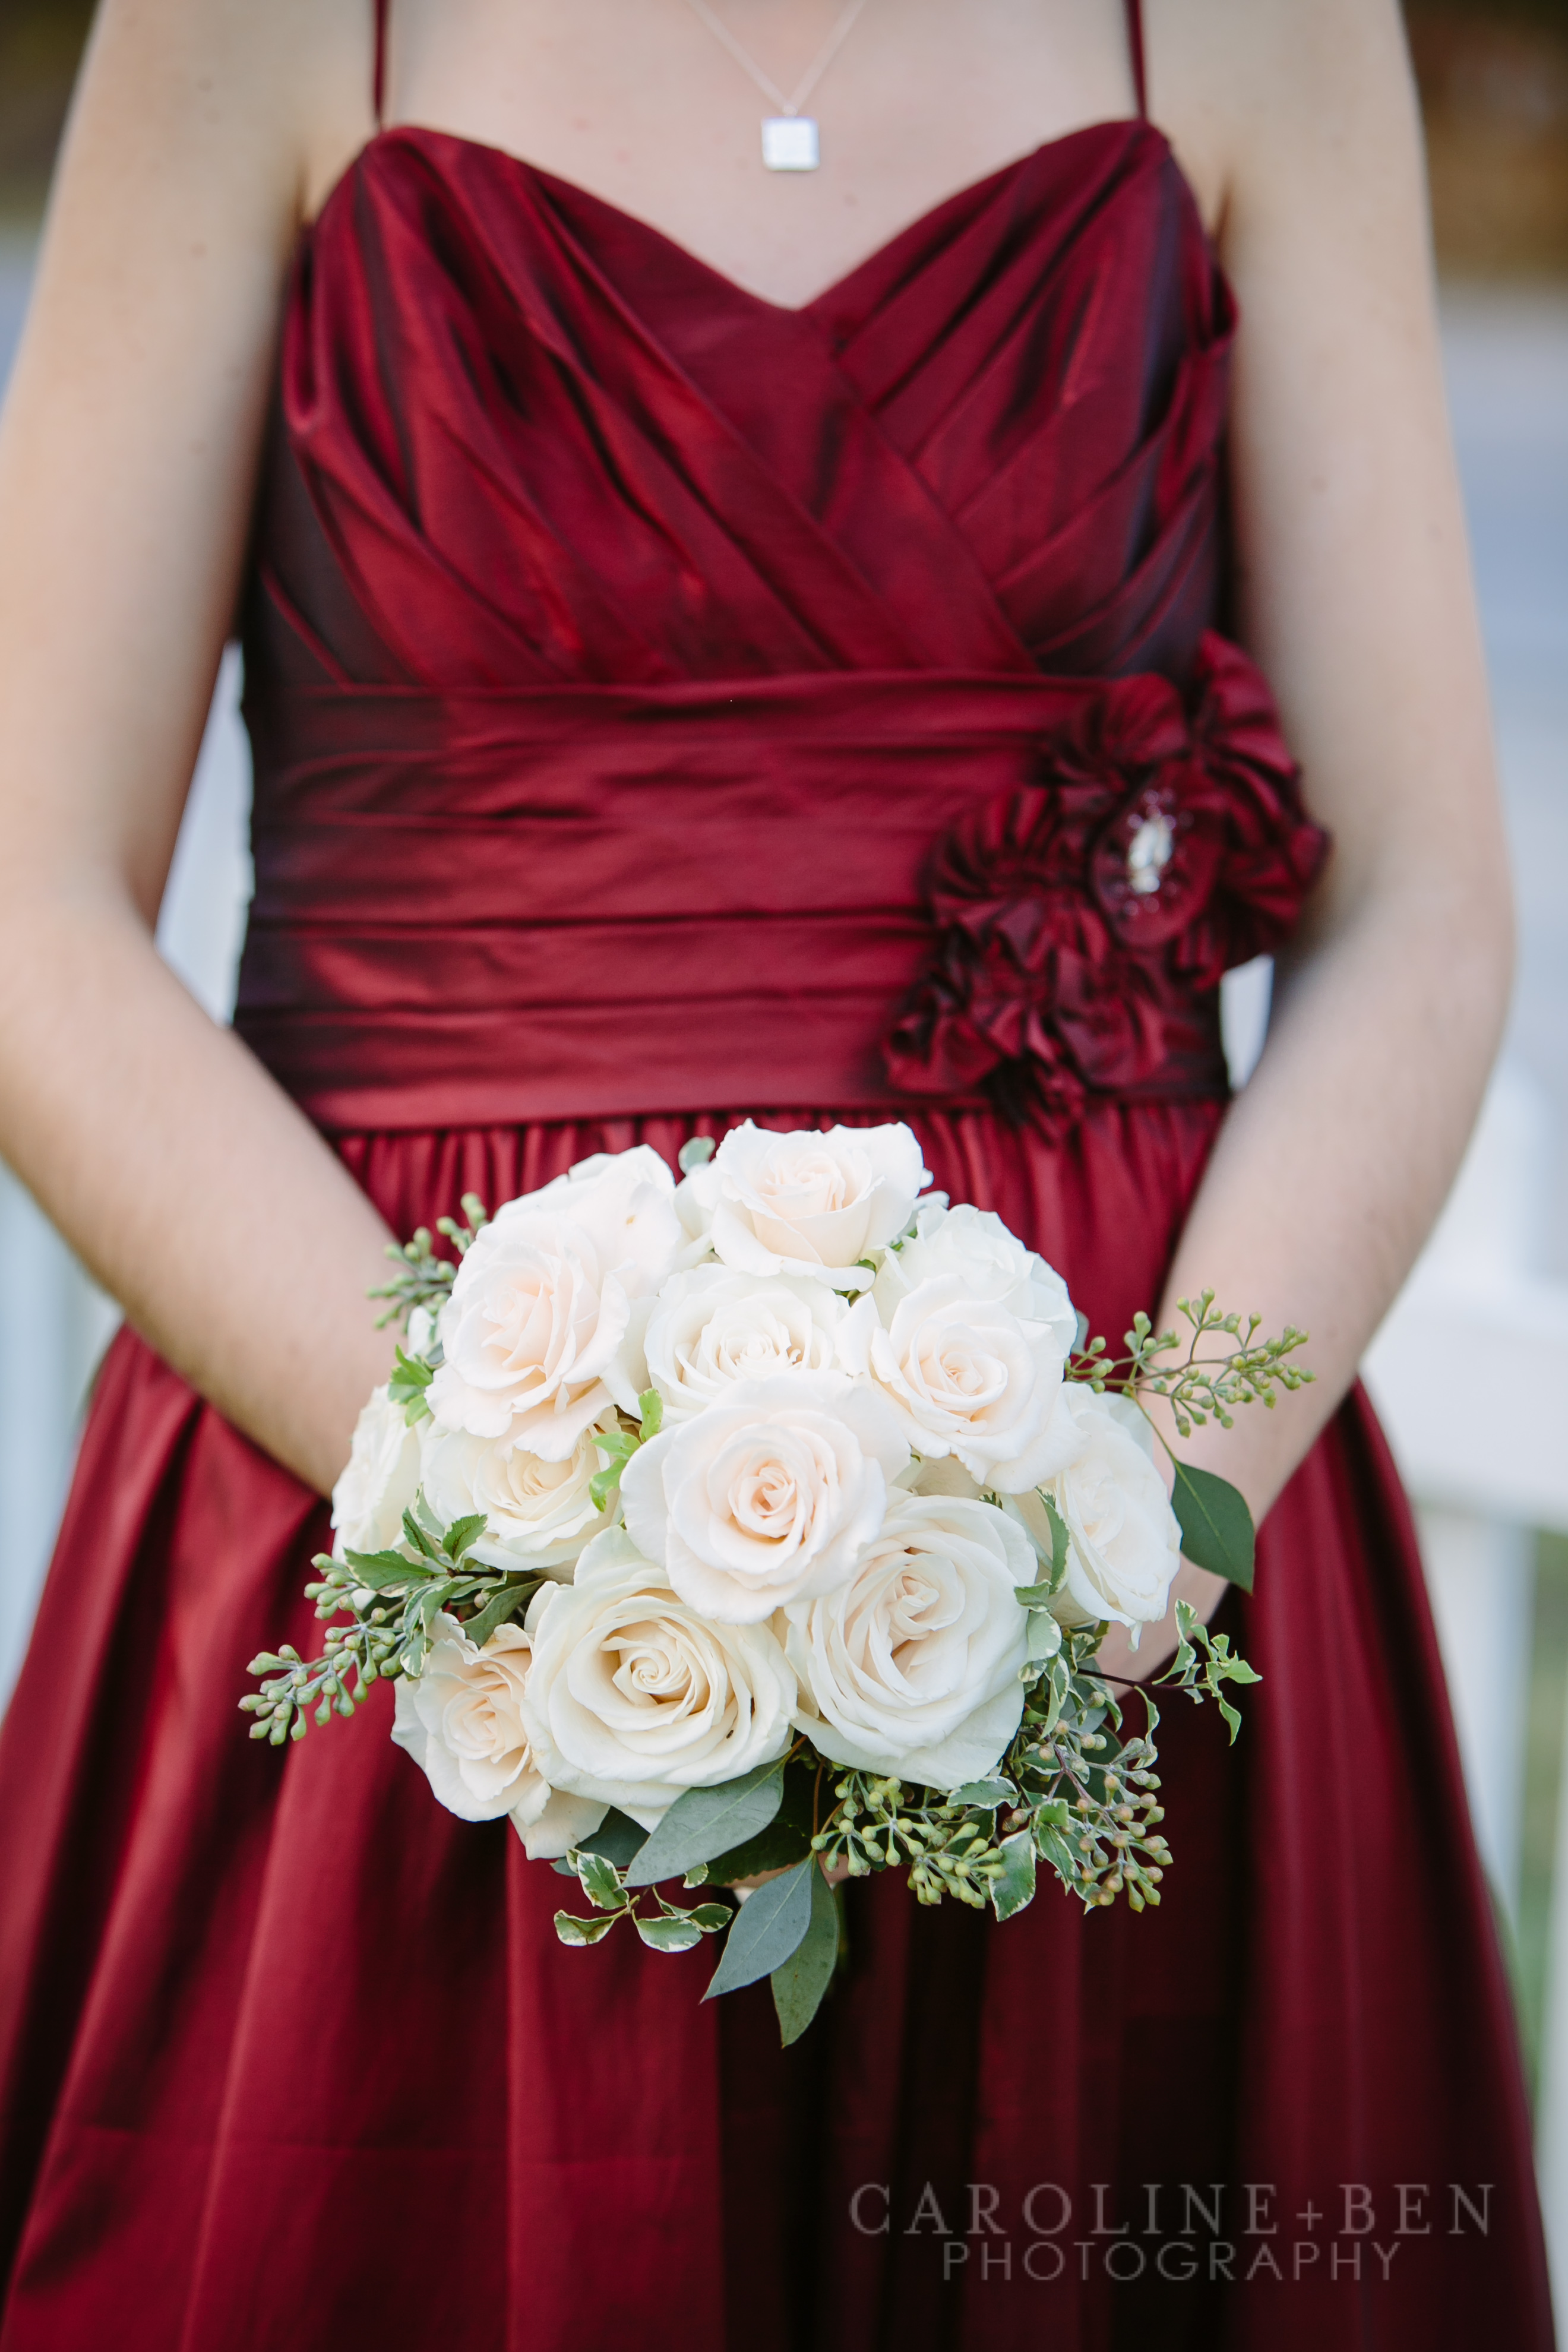 Lush open roses for the bridesmaids who were dressed elegantly in crimson.